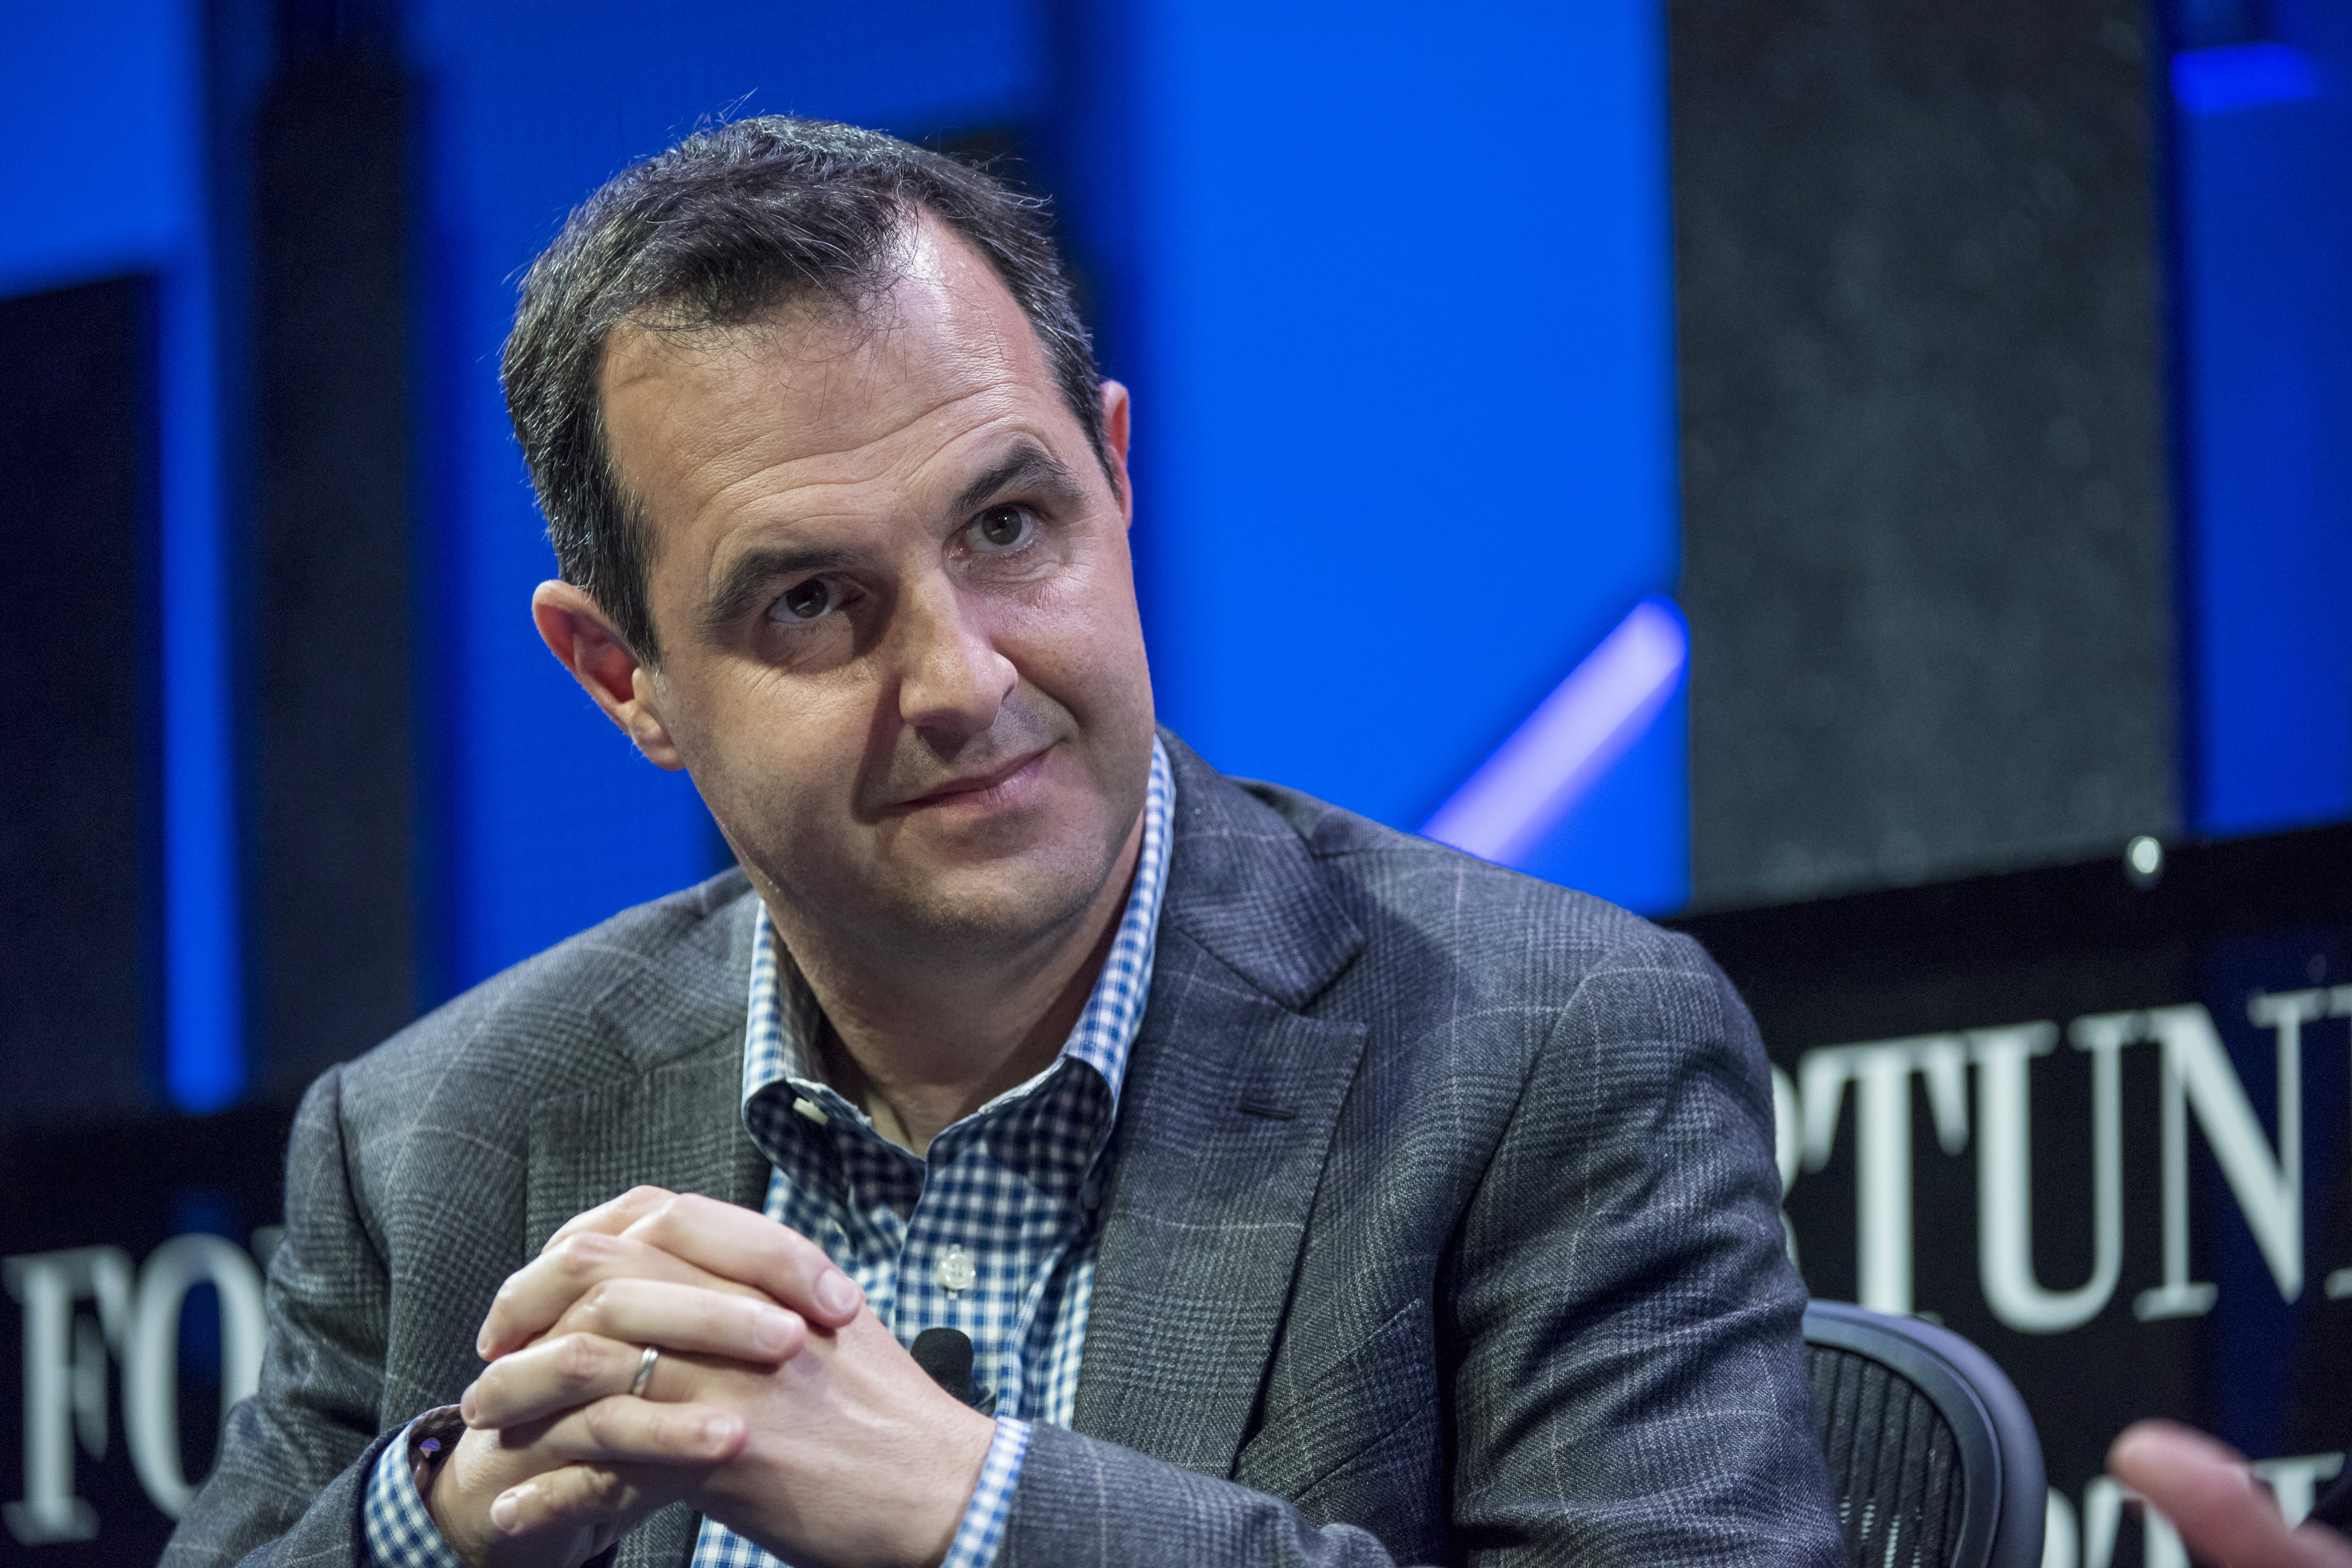 Lending Club founder and ousted CEO Renaud Laplanche